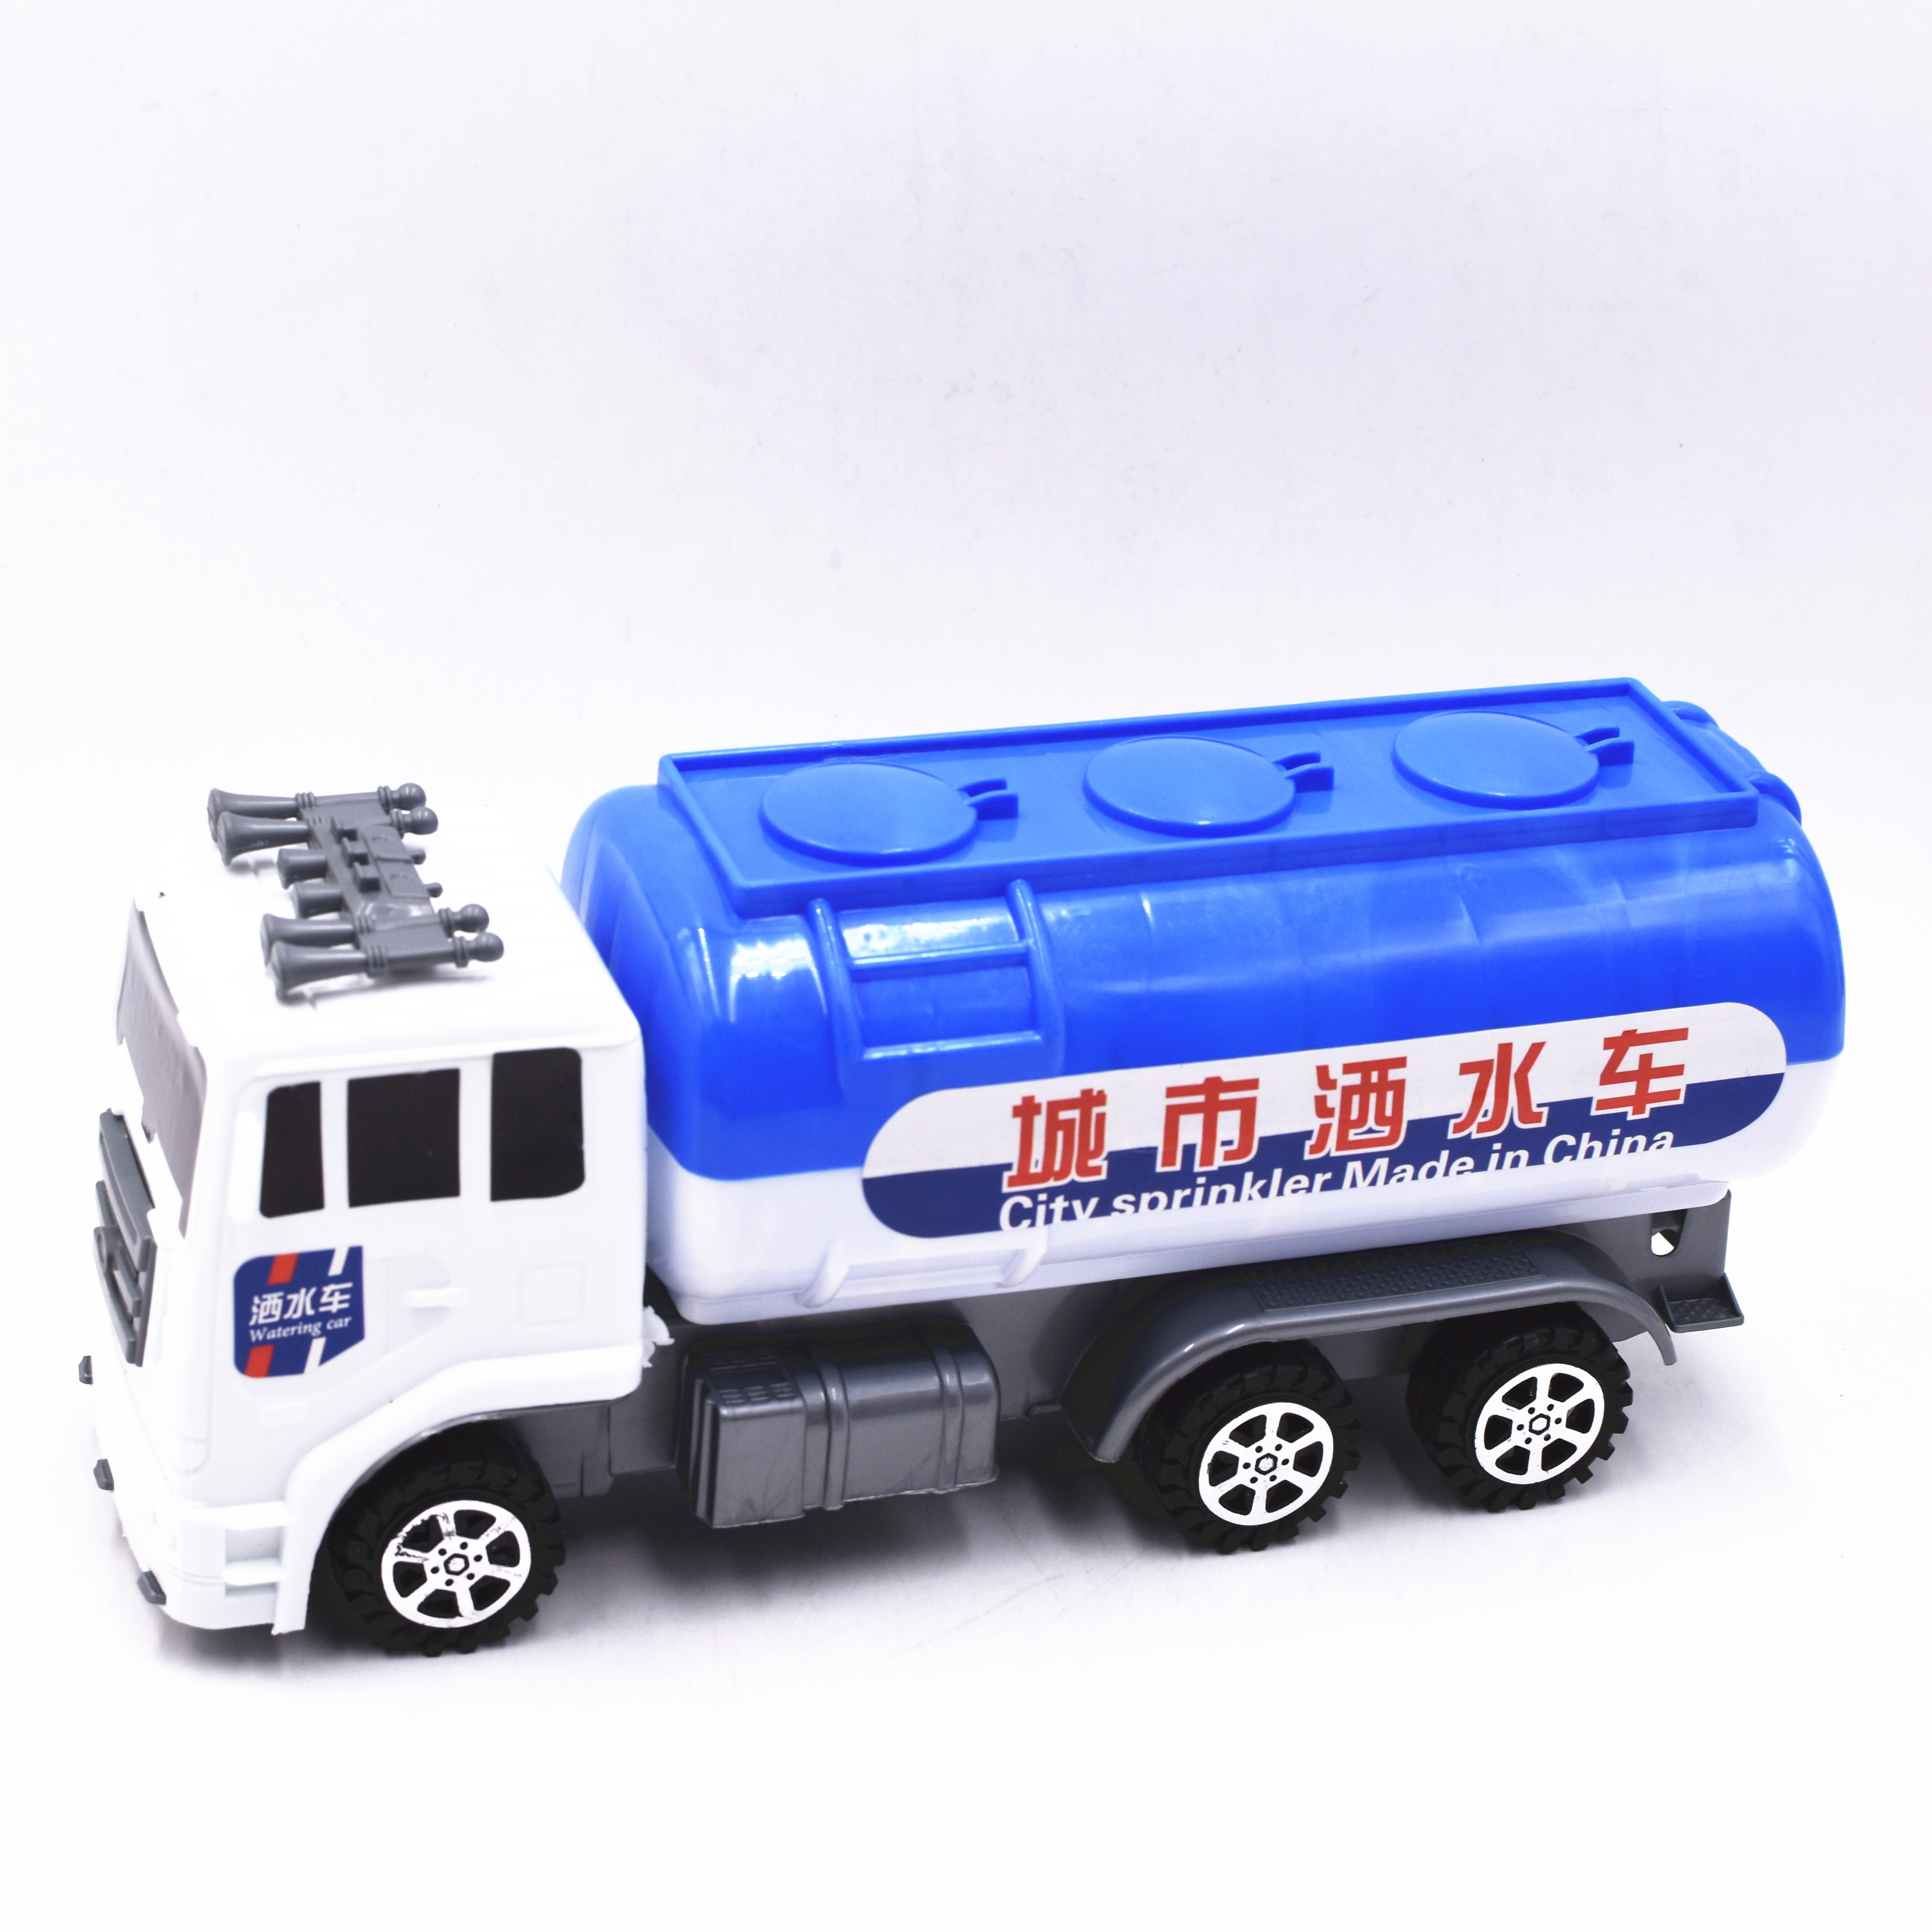 FREE WHEEL TRUCK TOY LY1752